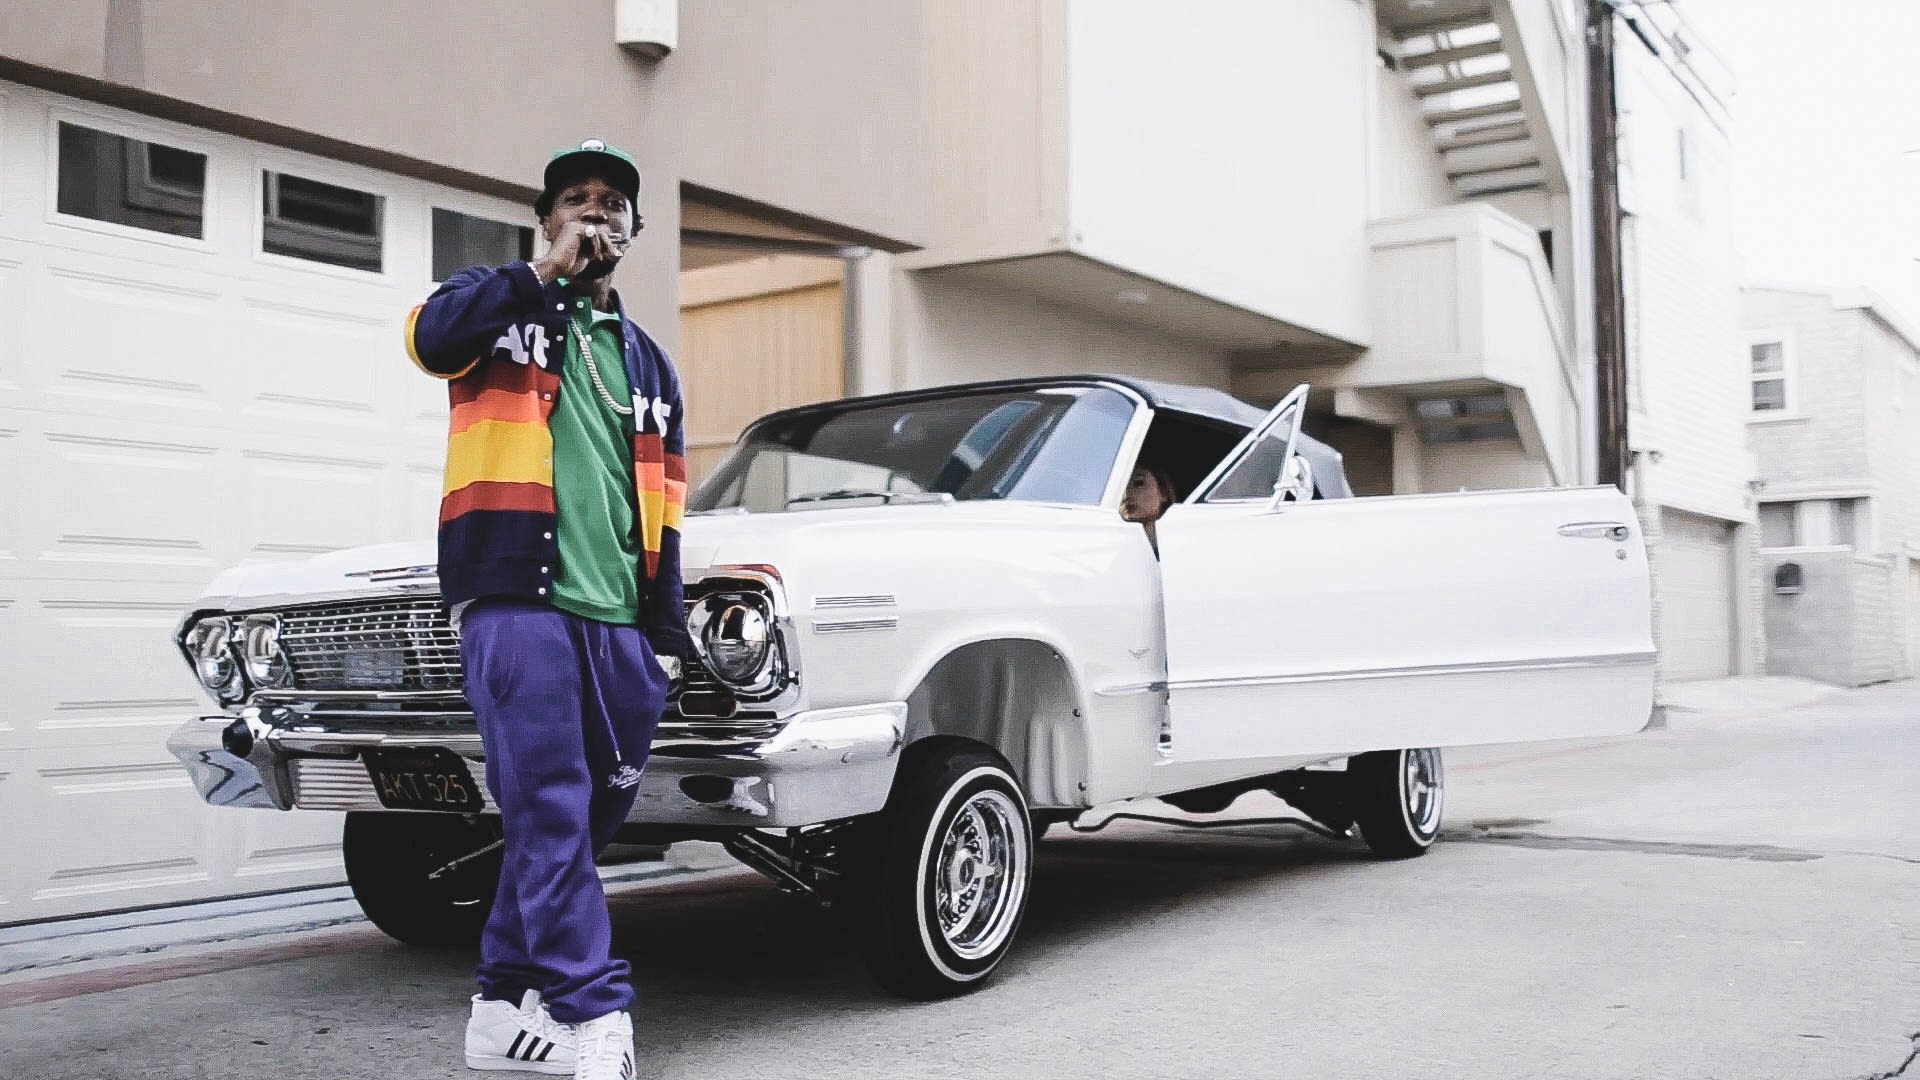 Curren$y & Wiz Khalifa Drop New 'Situations' Joint [Listen] curreny grand theft auto